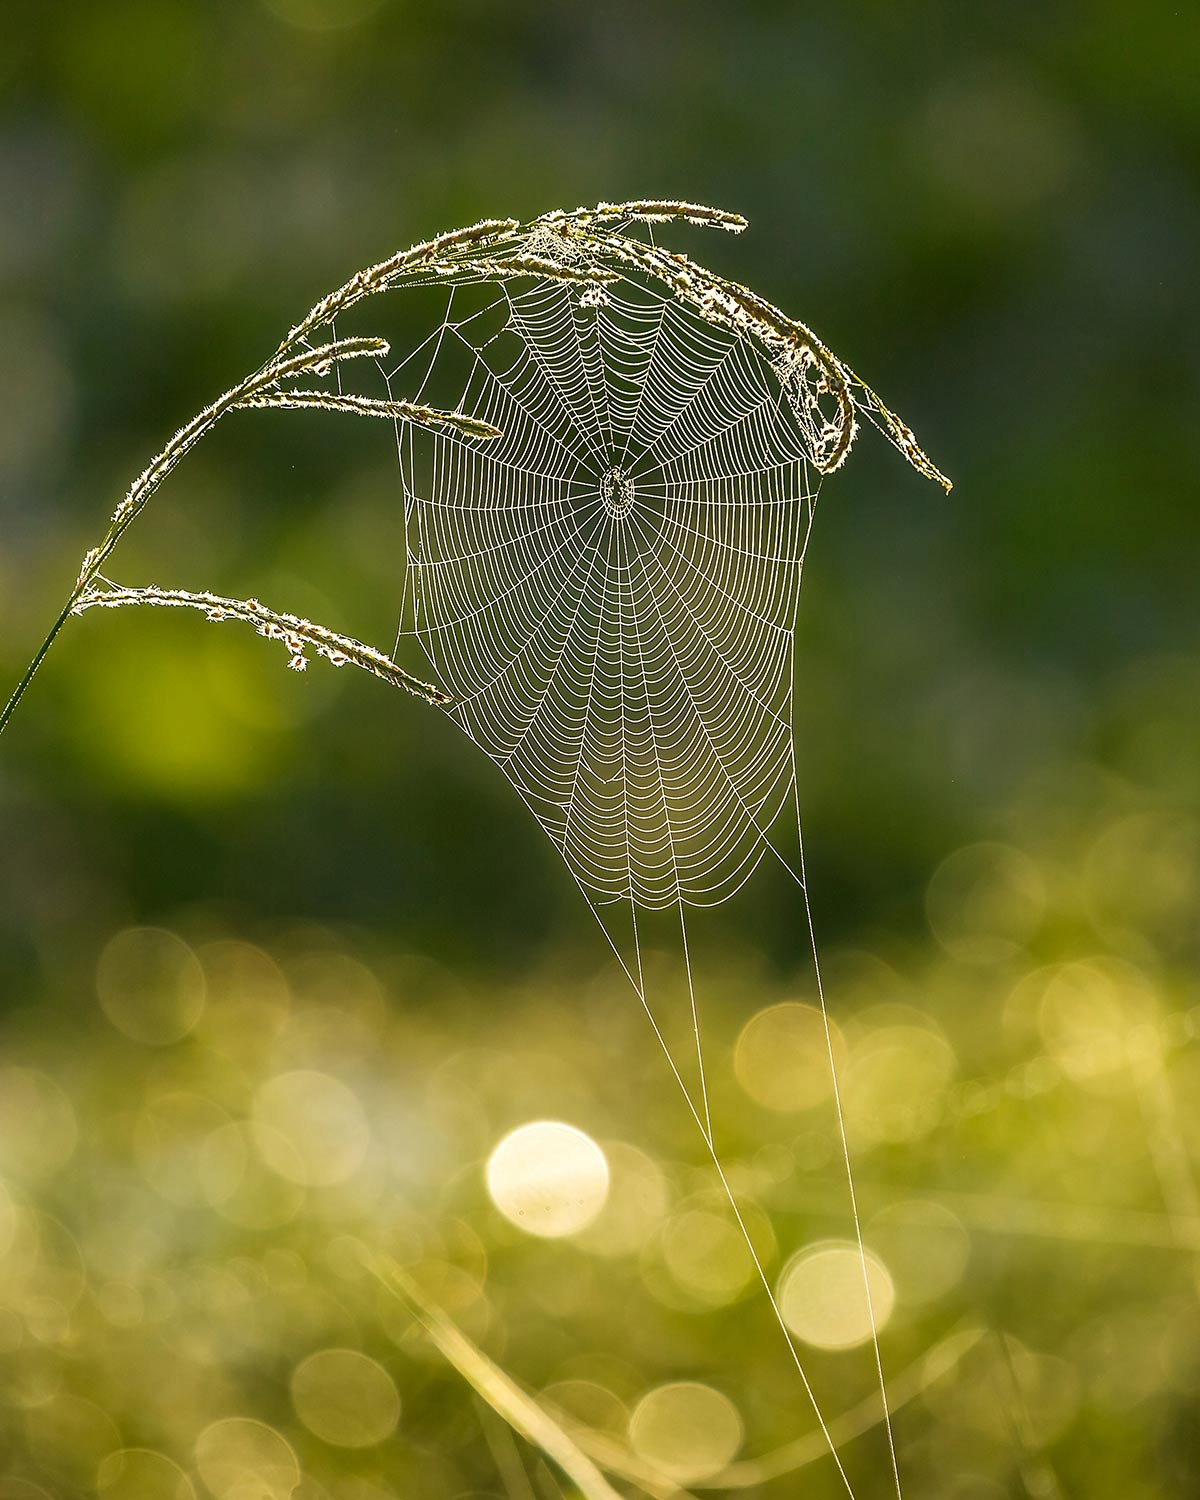 Spiderweb lit-up in the early morning sunshine.